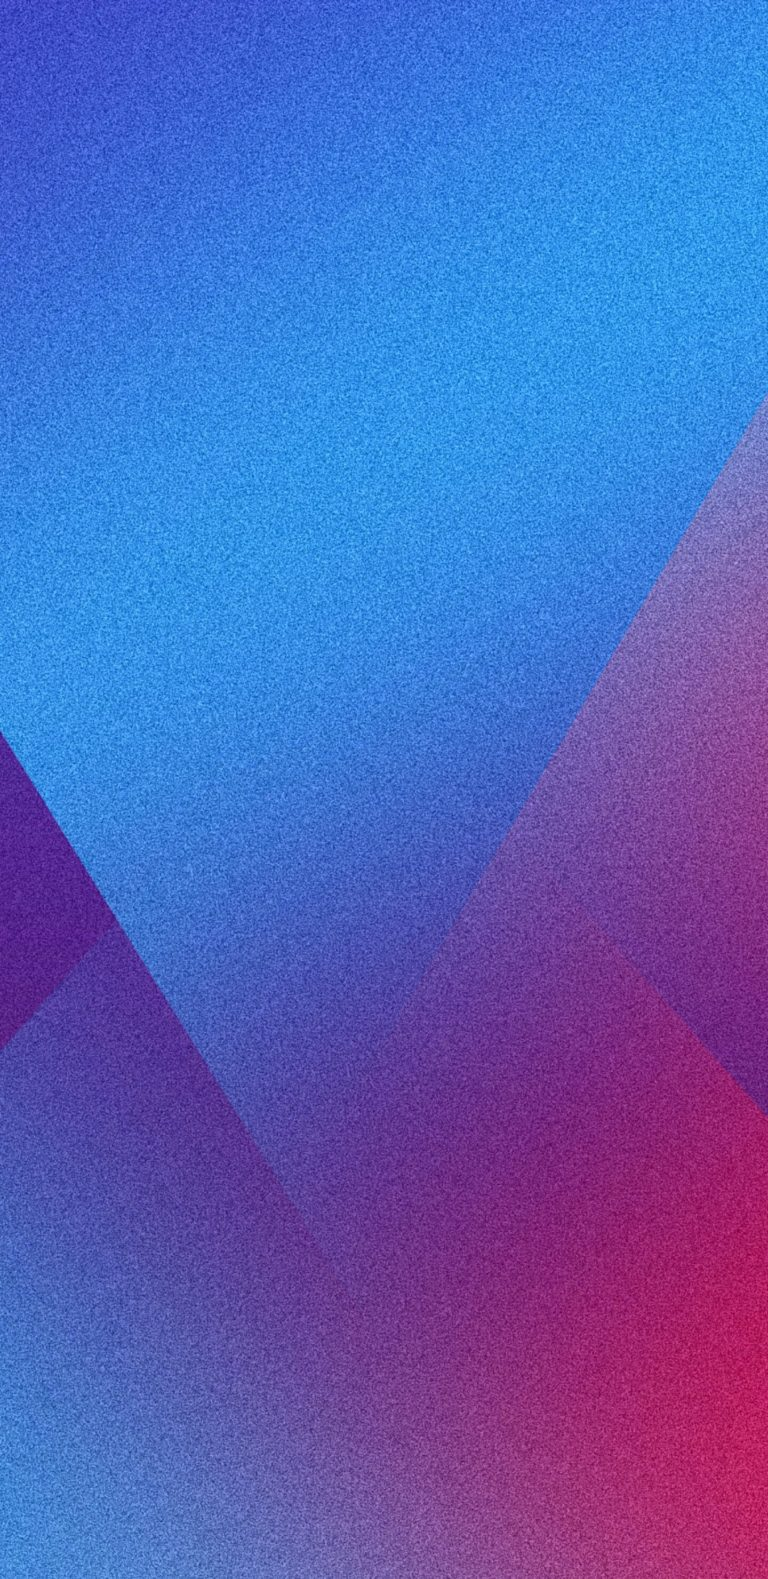 3d Iphone 7 Plus Wallpaper 1440x2960 Hd Wallpaper 066